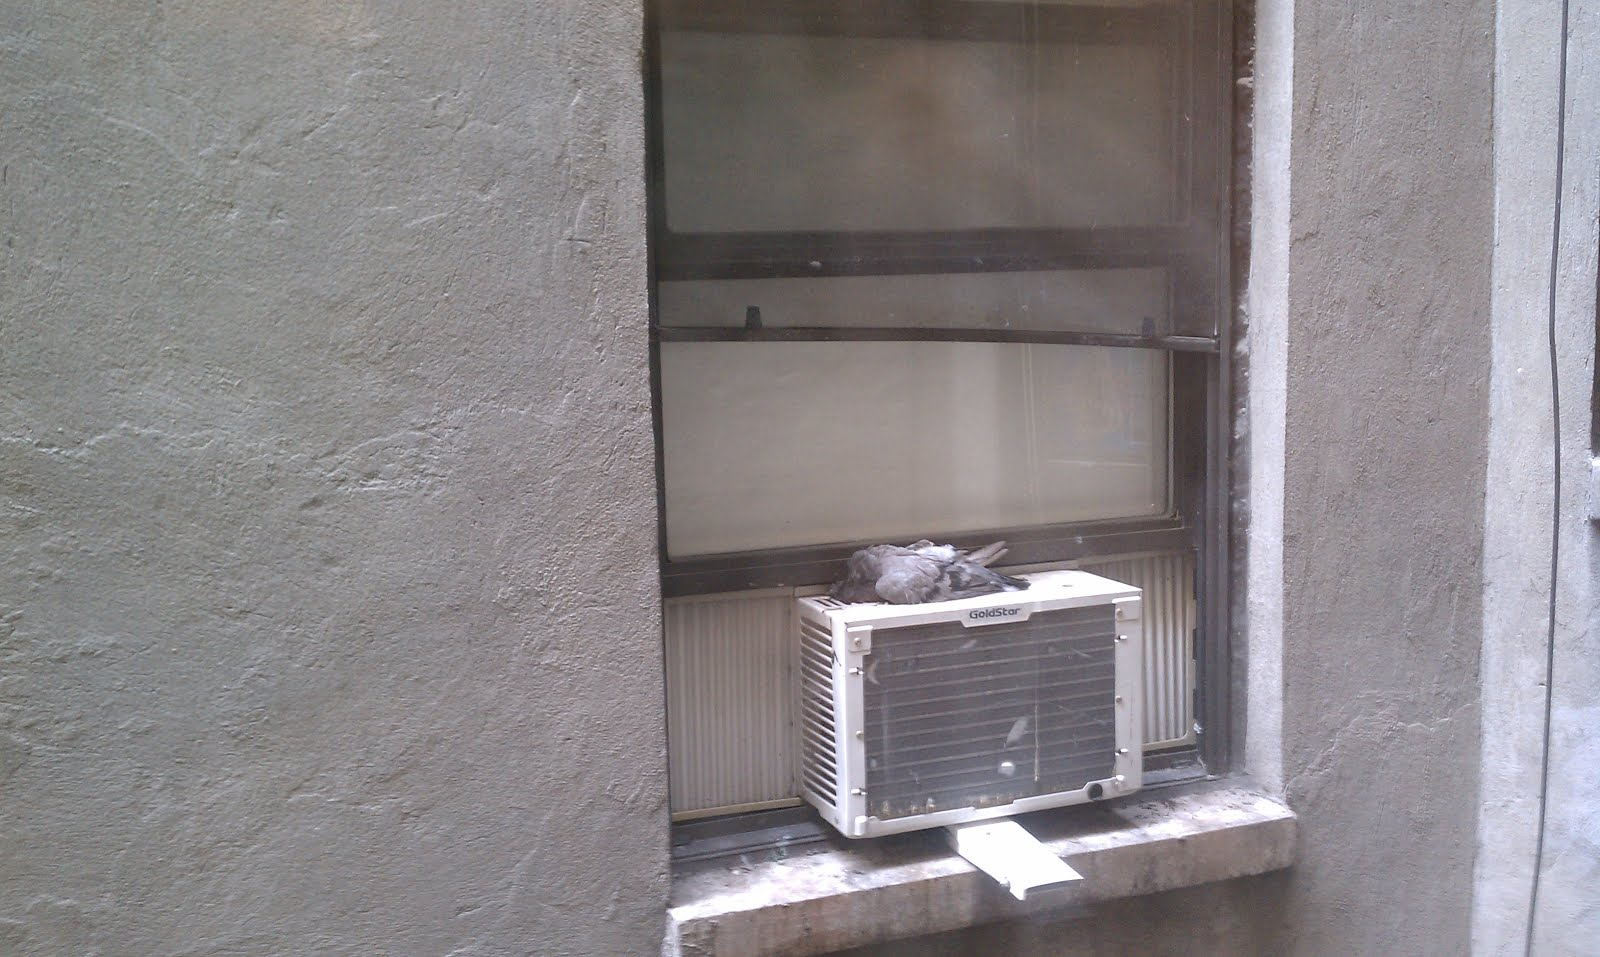 Air conditioner new york november 2012 for Air conditioner bracket law